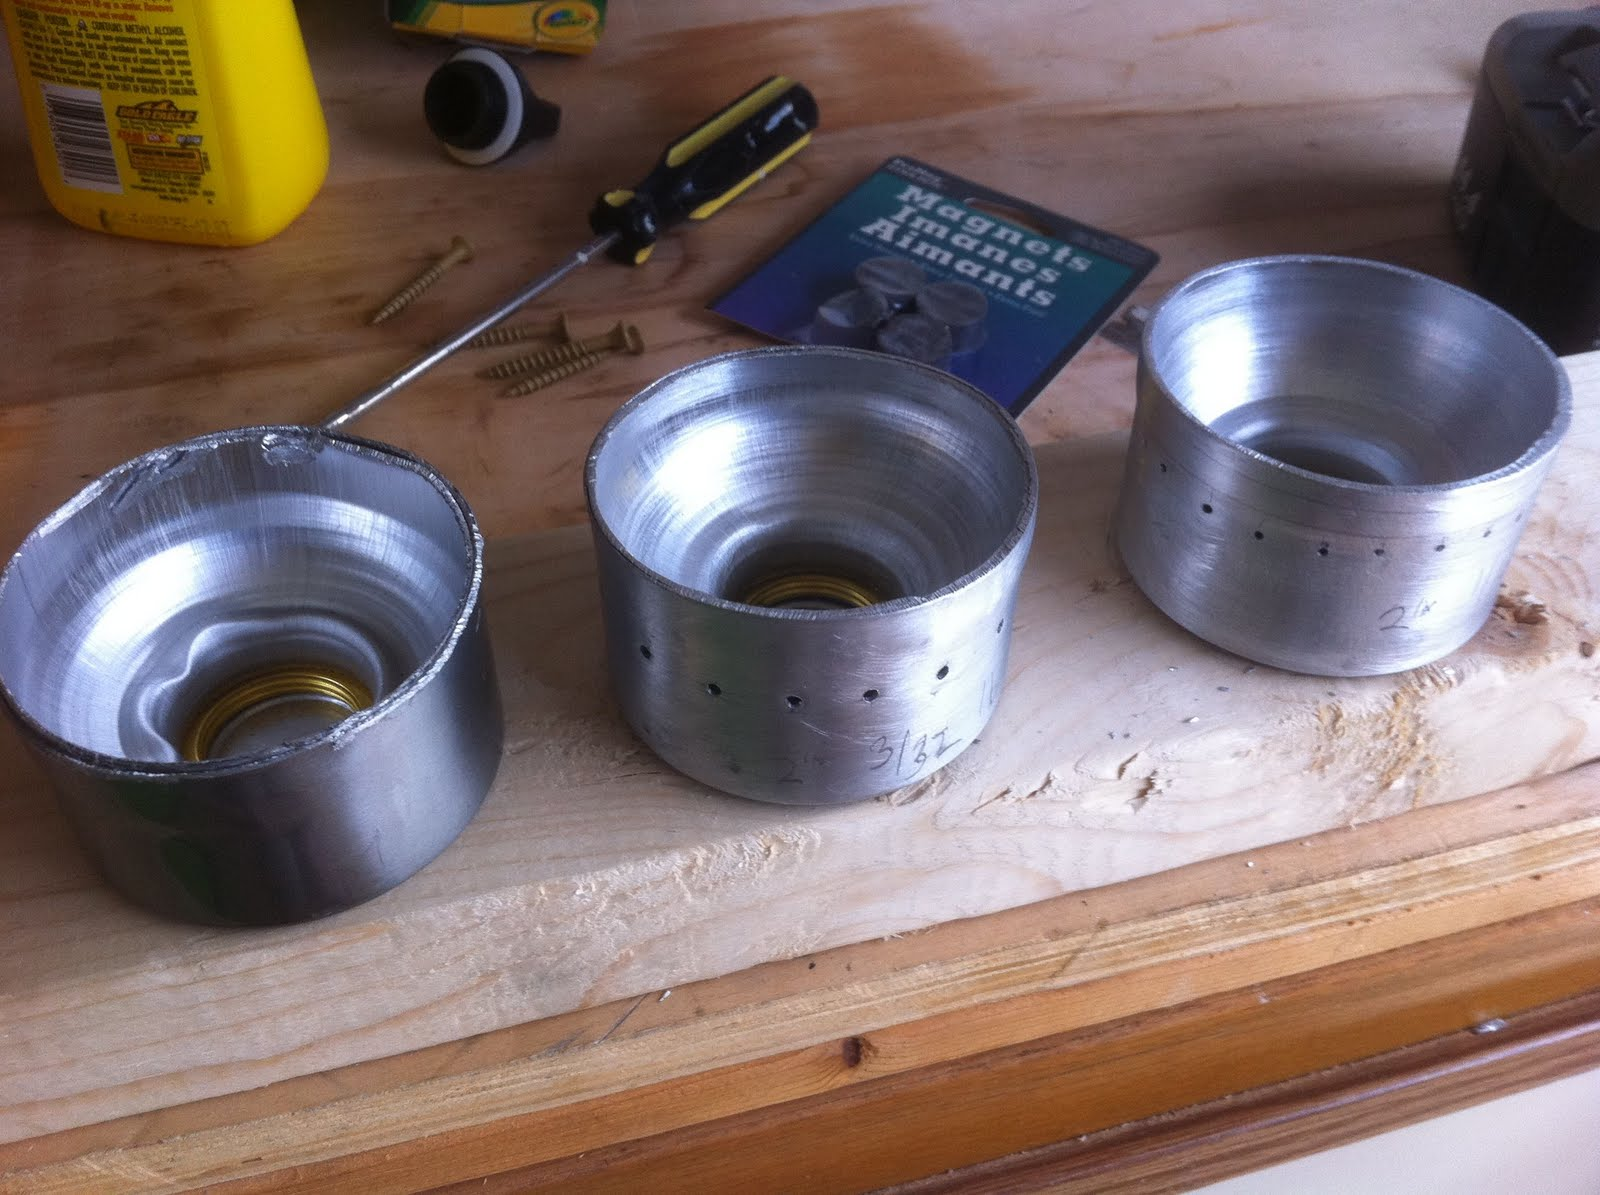 Running in circles for fun diy alcohol backpacking stove for How to make a homemade stove